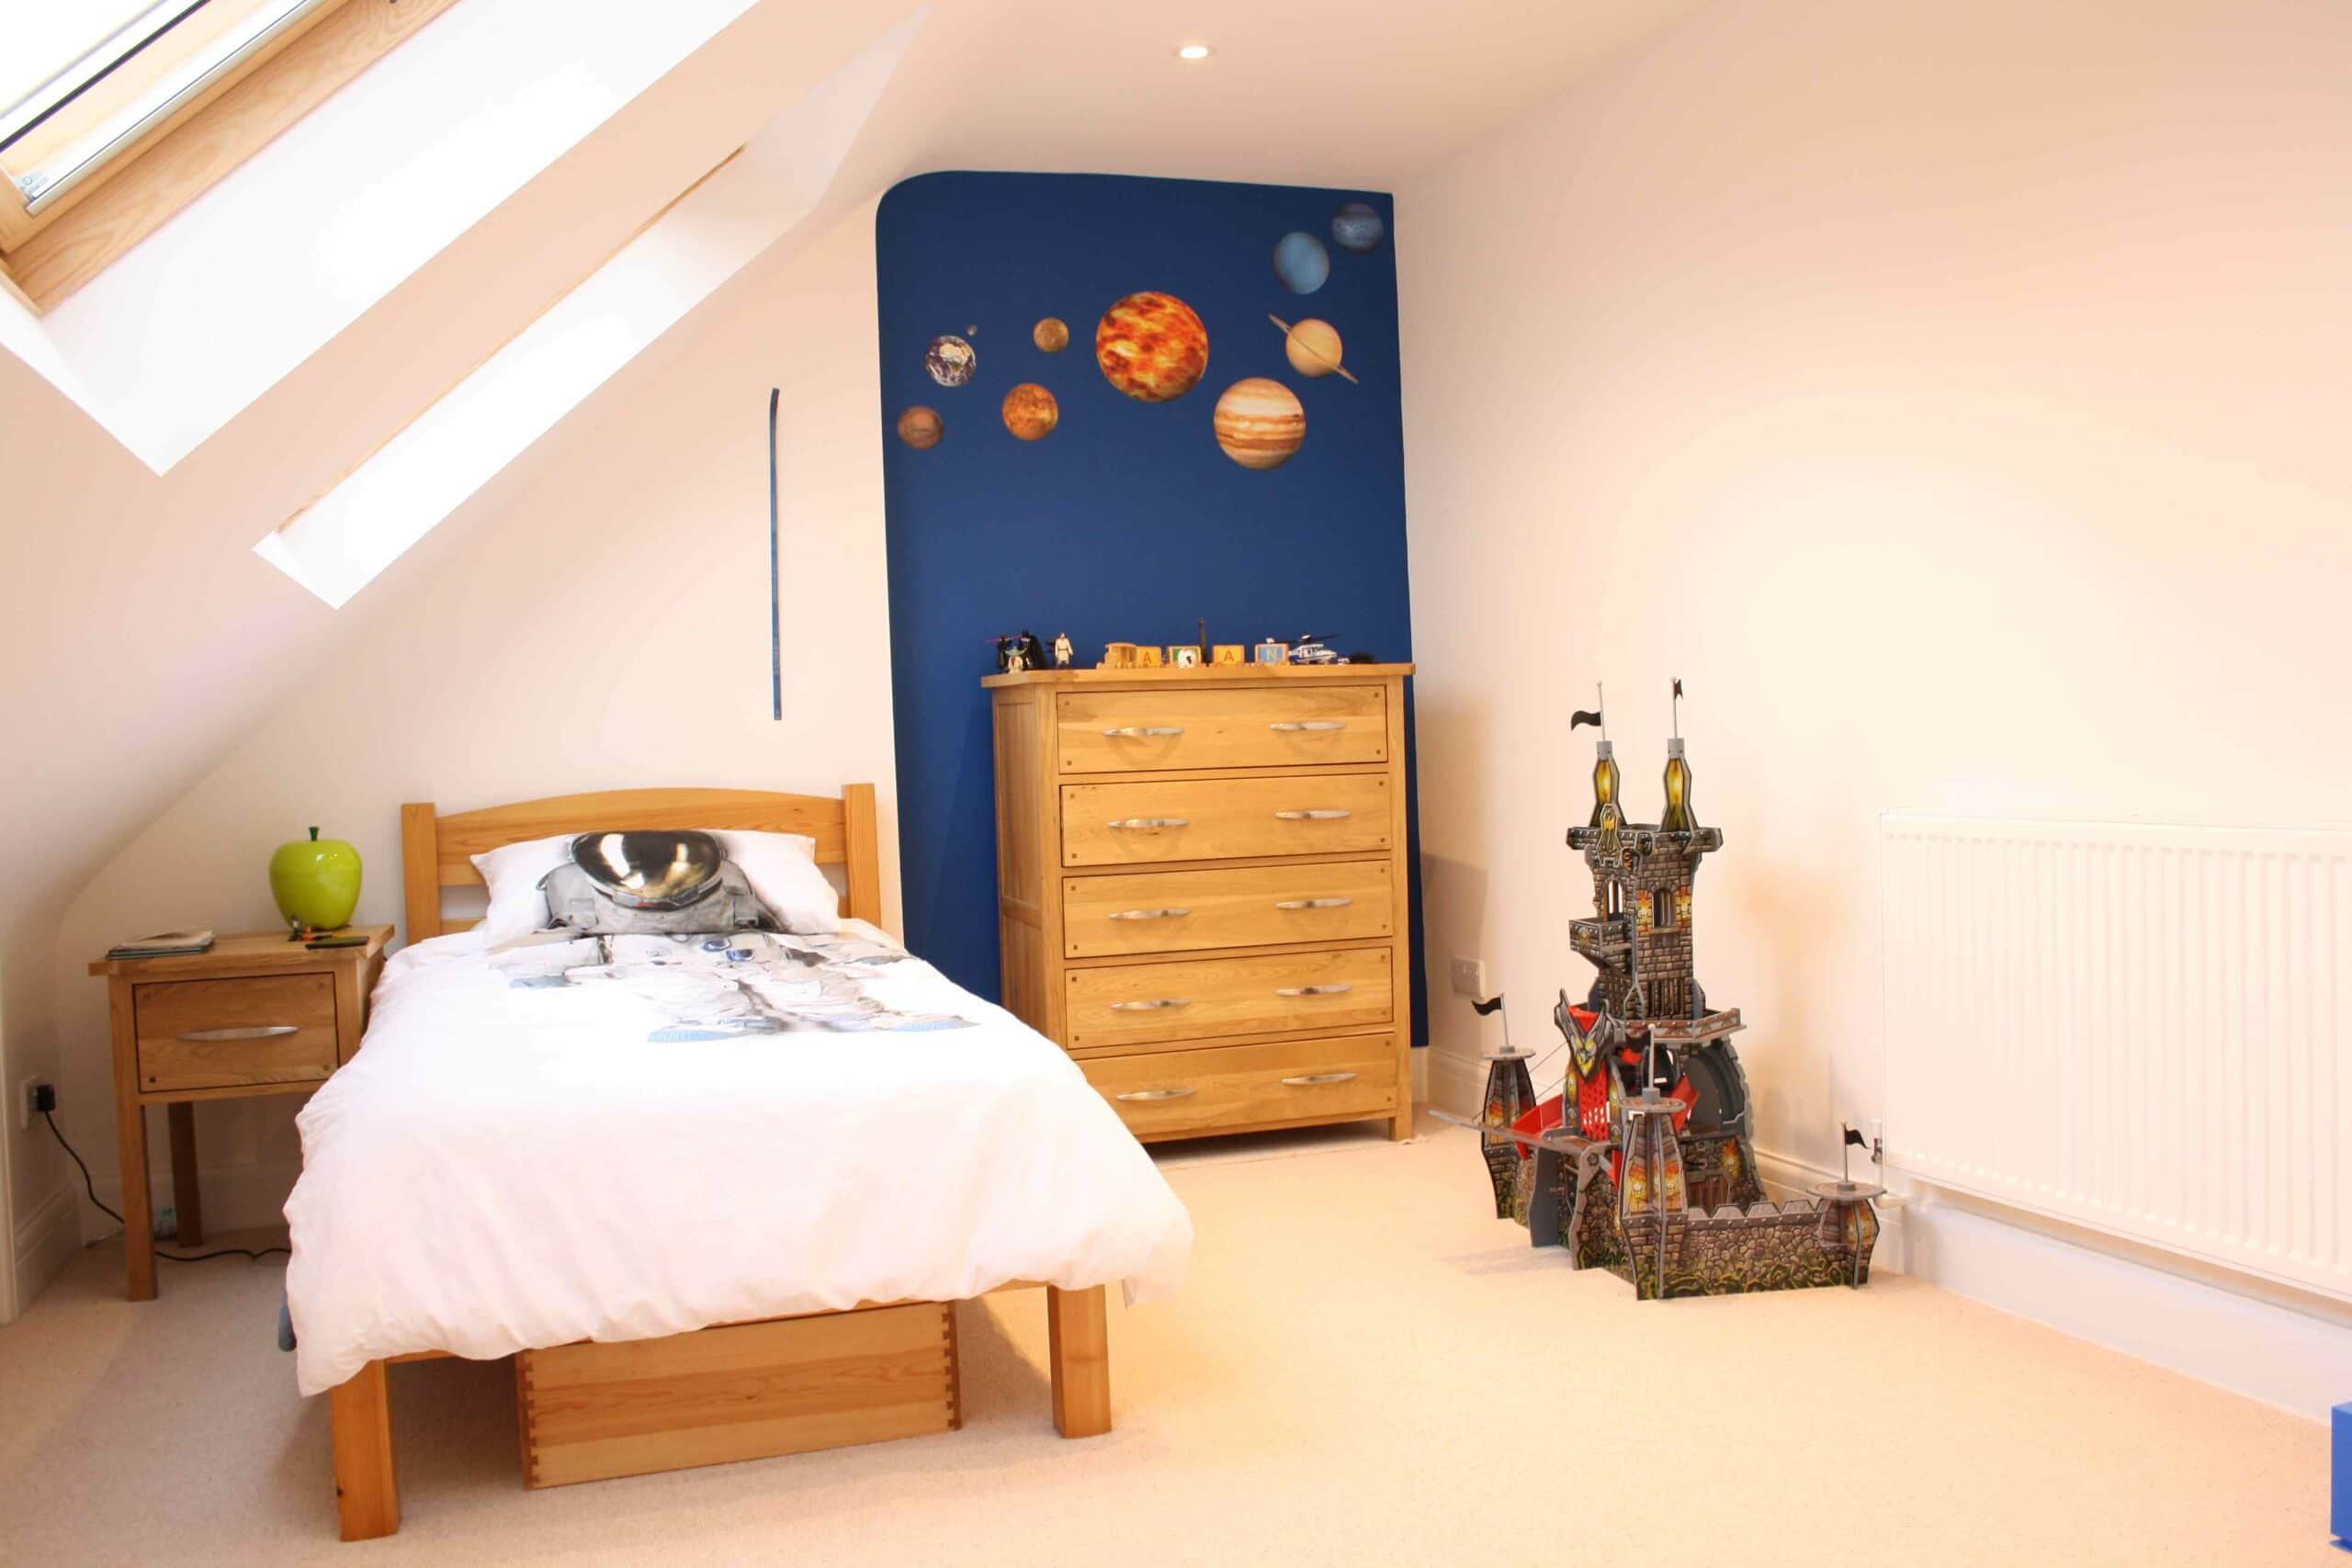 Small Children S Room Ideas: Shared Rooms The Pros And Cons